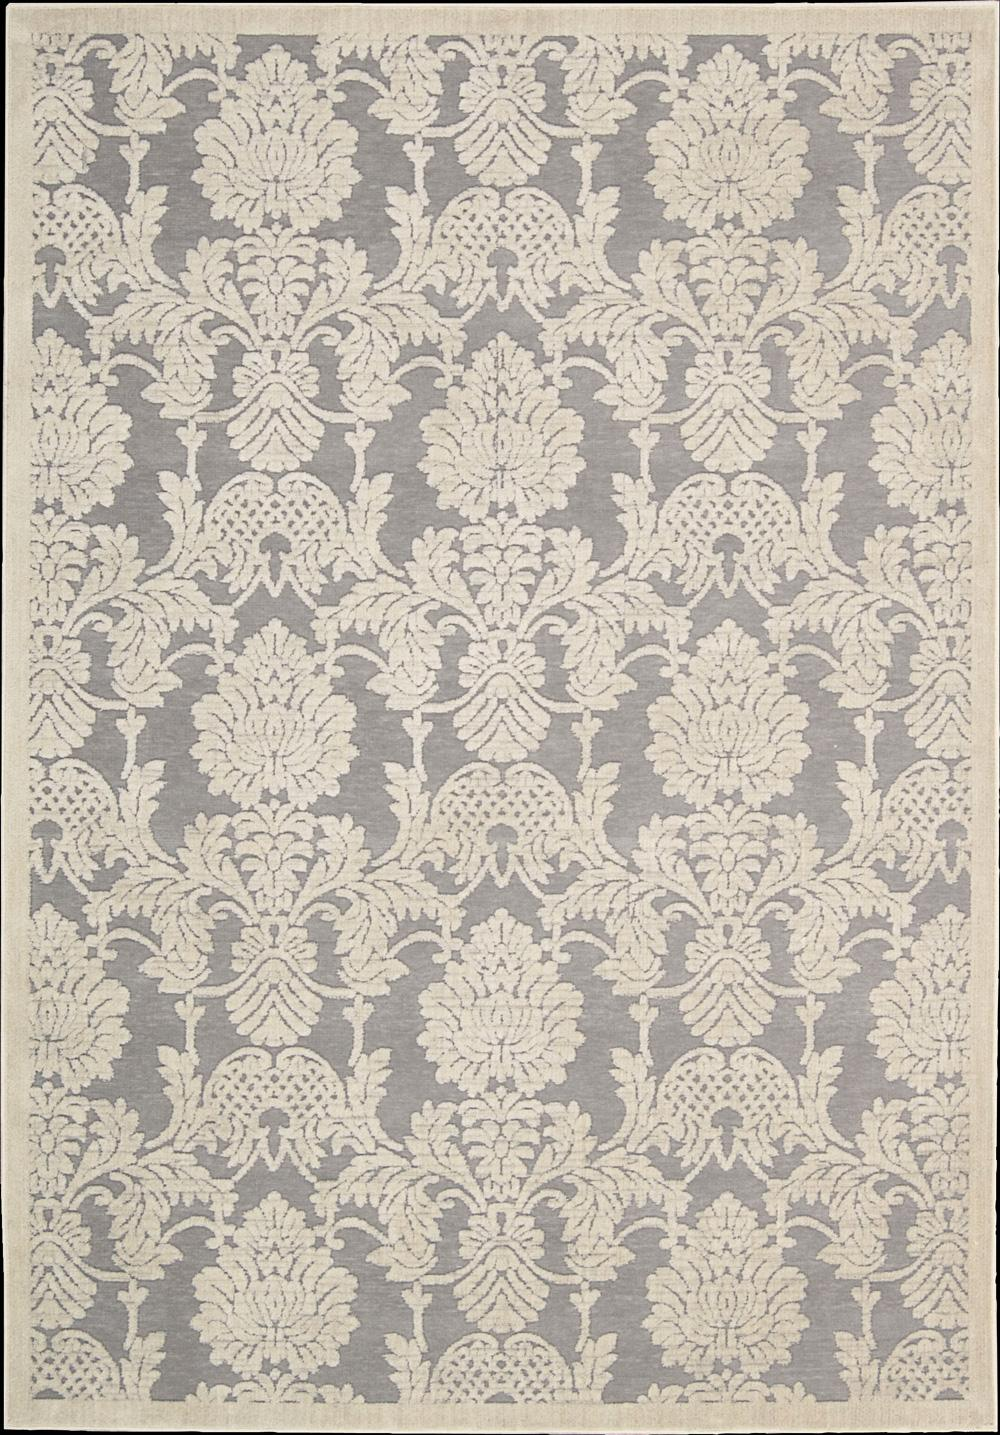 "Nourison Graphic Illusions Area Rug 2'3"" x 3'9"" - Item Number: 11790"